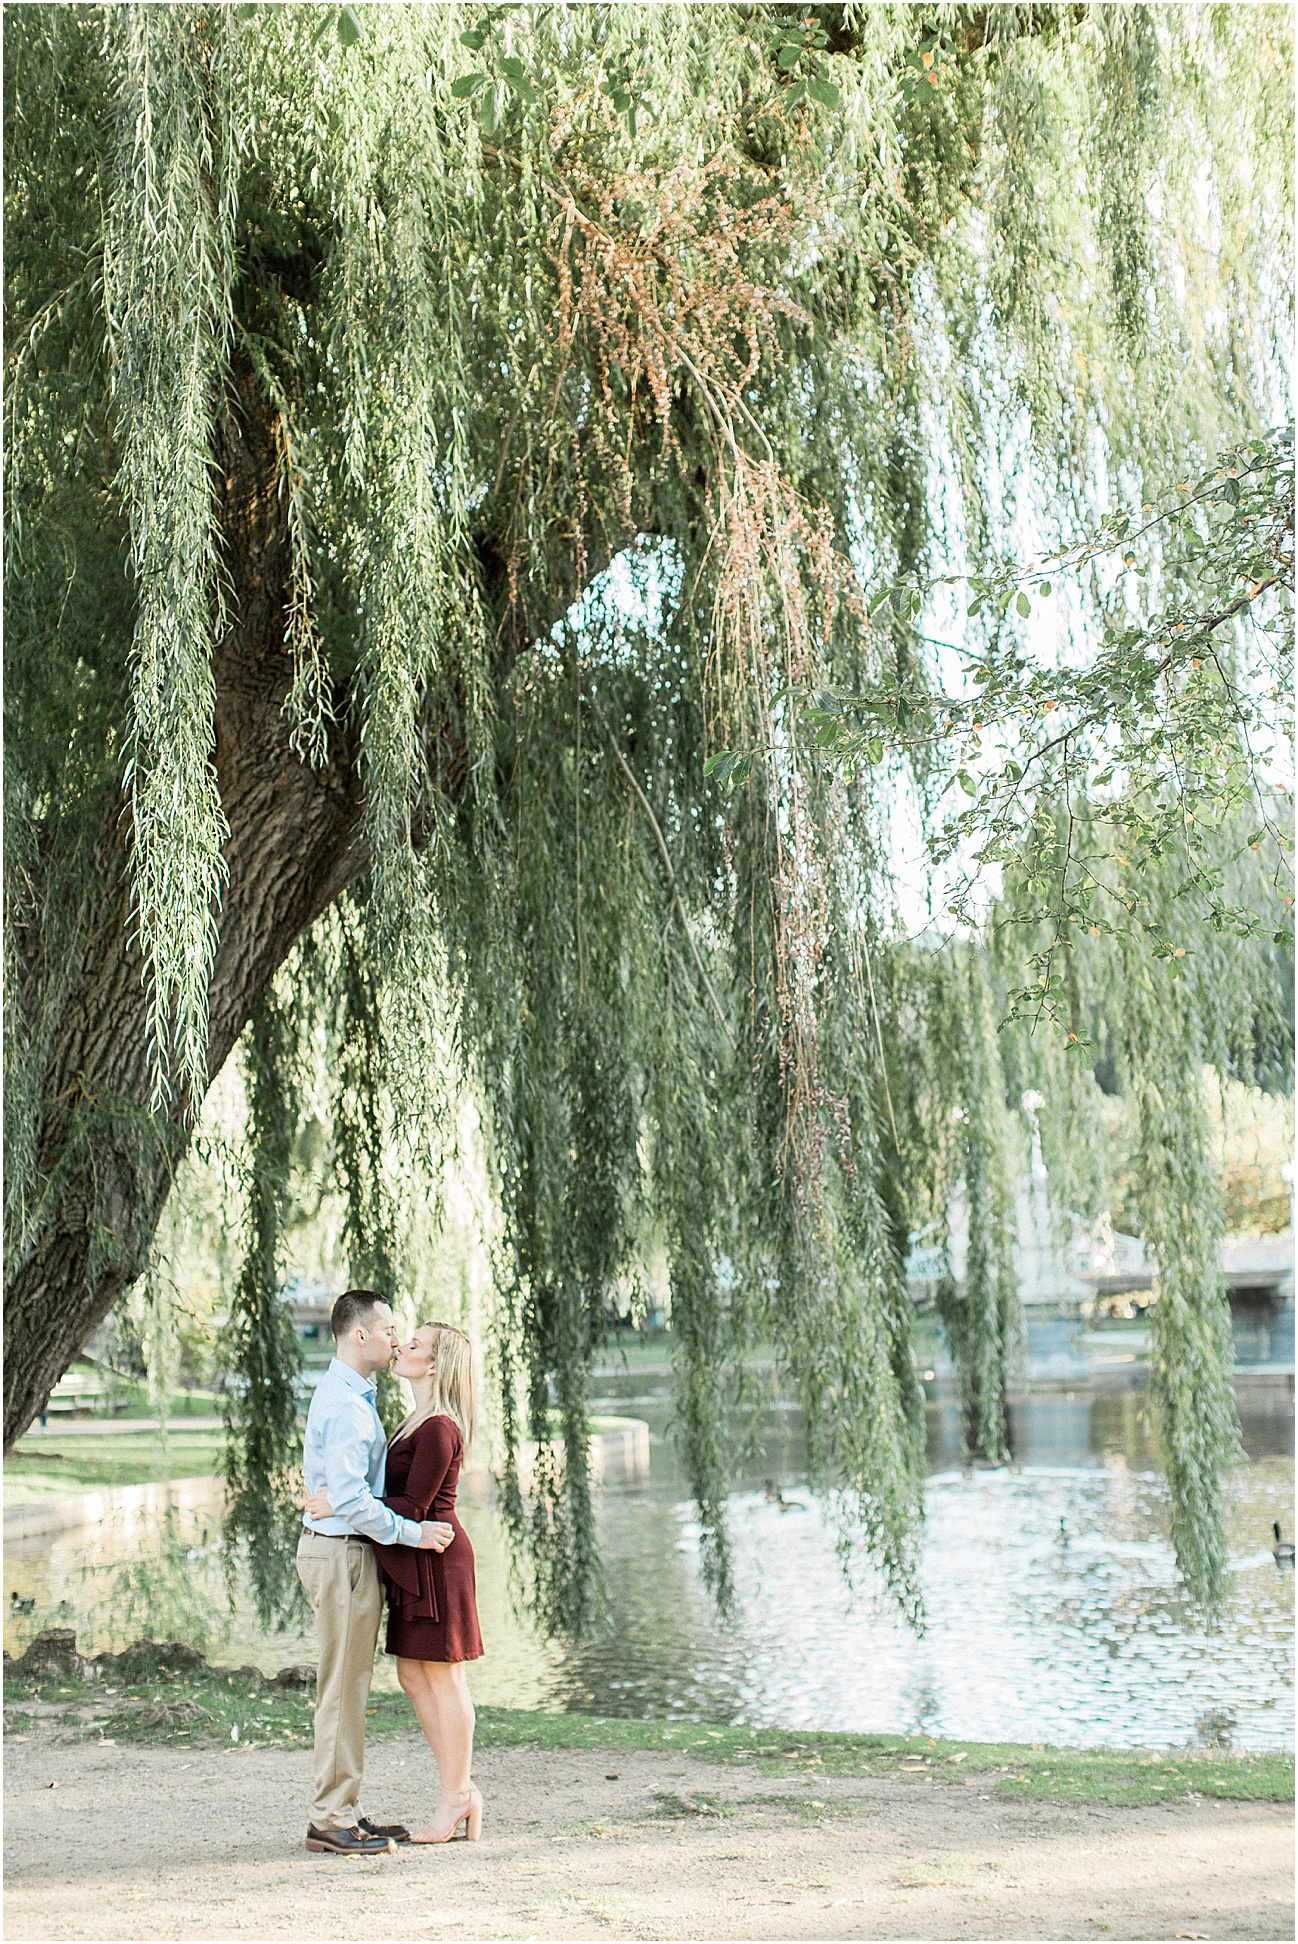 jenny_jared_beacon_hill_acorn_street_seaport_engagement_fall_cape_cod_boston_wedding_photographer_meredith_jane_photography_photo_1533.jpg